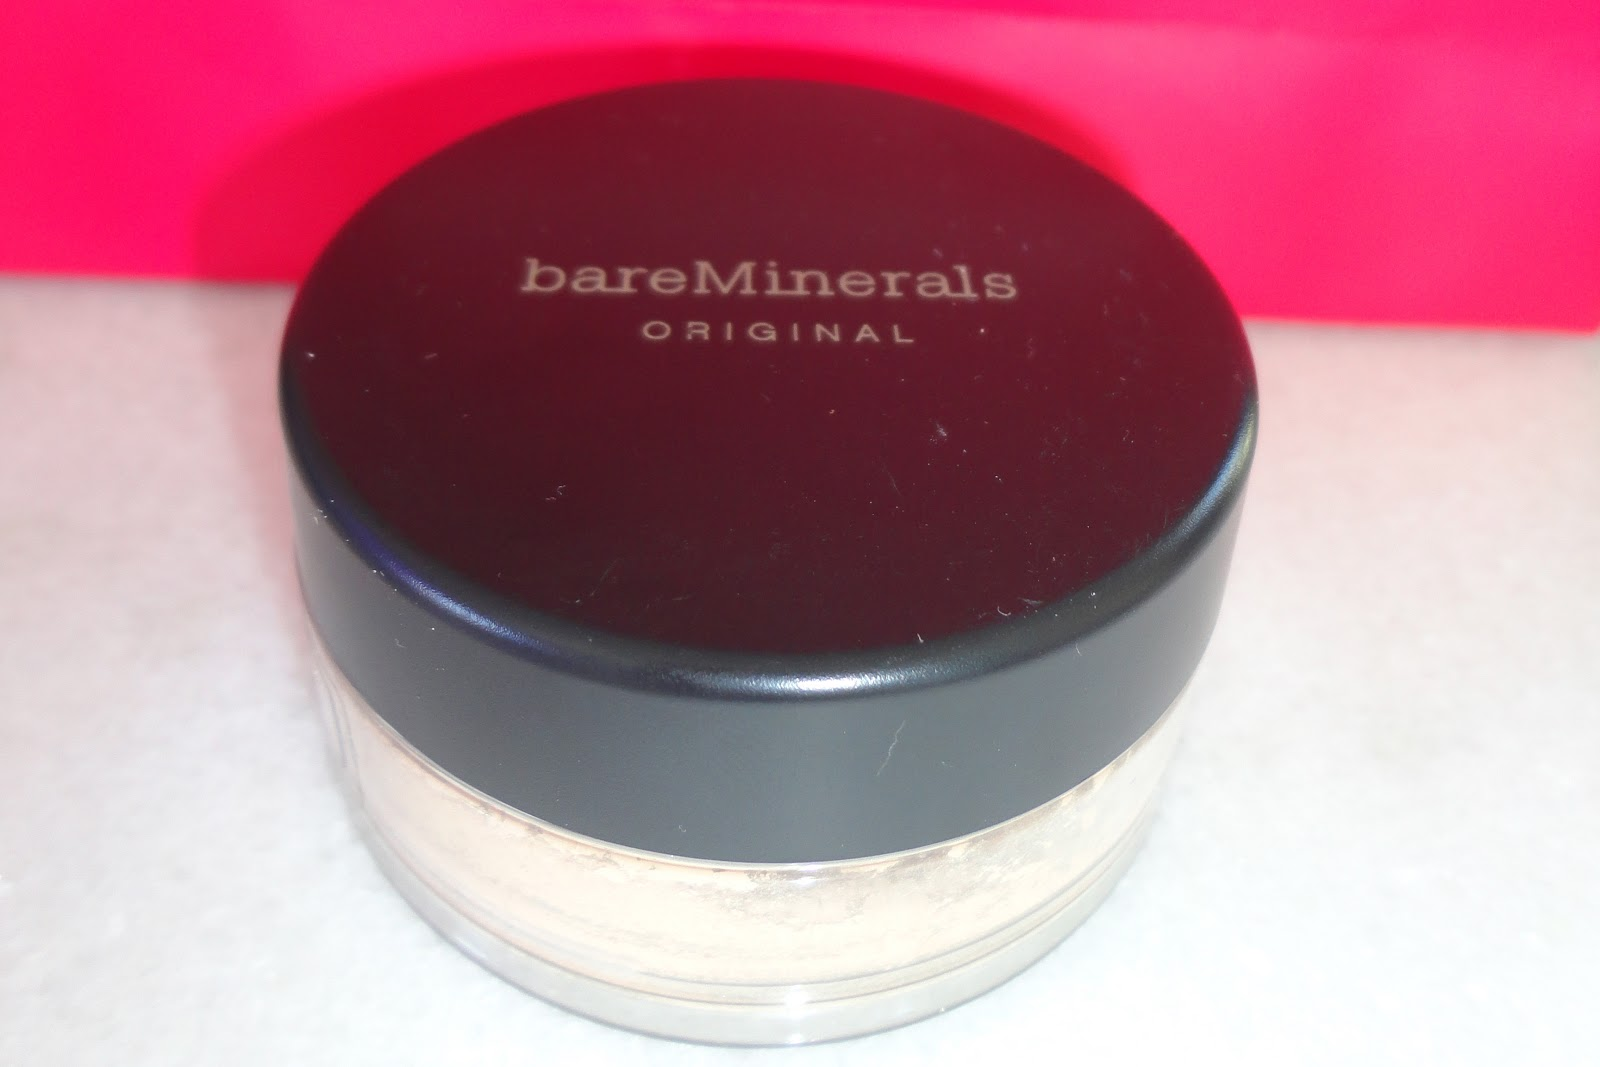 Base Mineral Original FPS15 bareMinerals